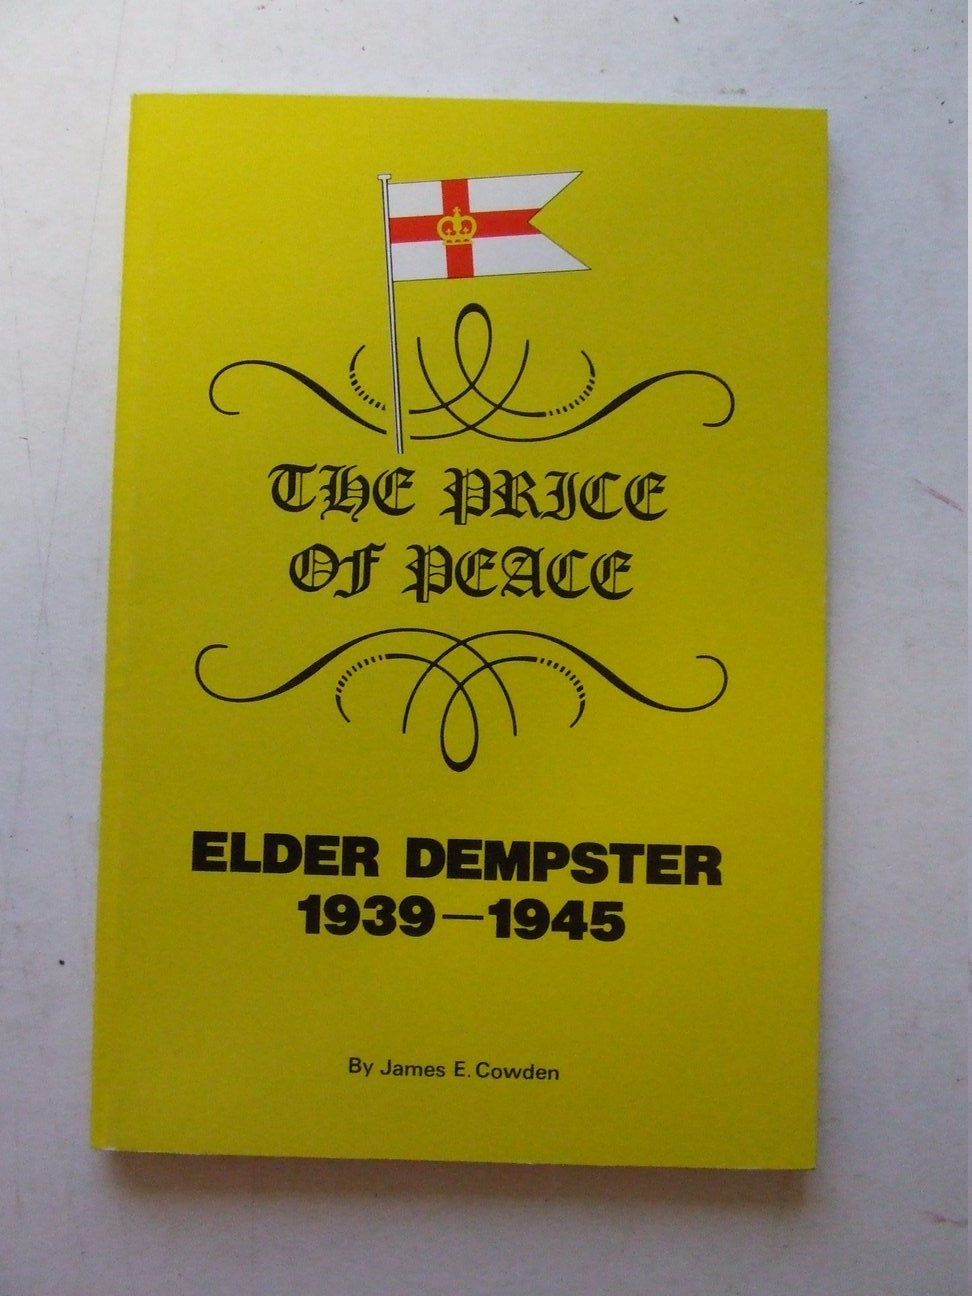 The Price of Peace - Elder Dempster 1939-1945